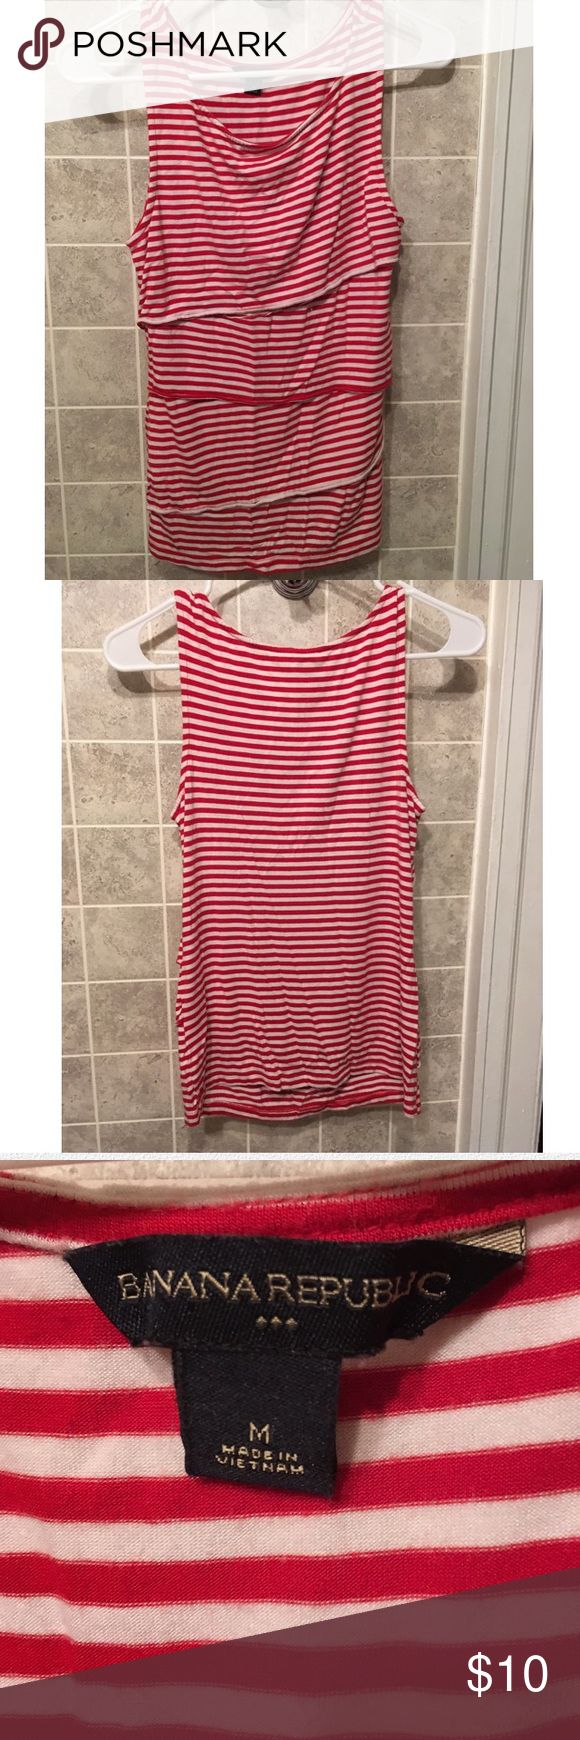 Banana Republic red&white stripe tiered top size M Banana Republic red and white stripe tiered top size medium. Back of the top is plain and does not have the tier style. Stretchy top and very flattering. Excellent used condition. Looks great alone or under a cardigan. Banana Republic Tops Tank Tops